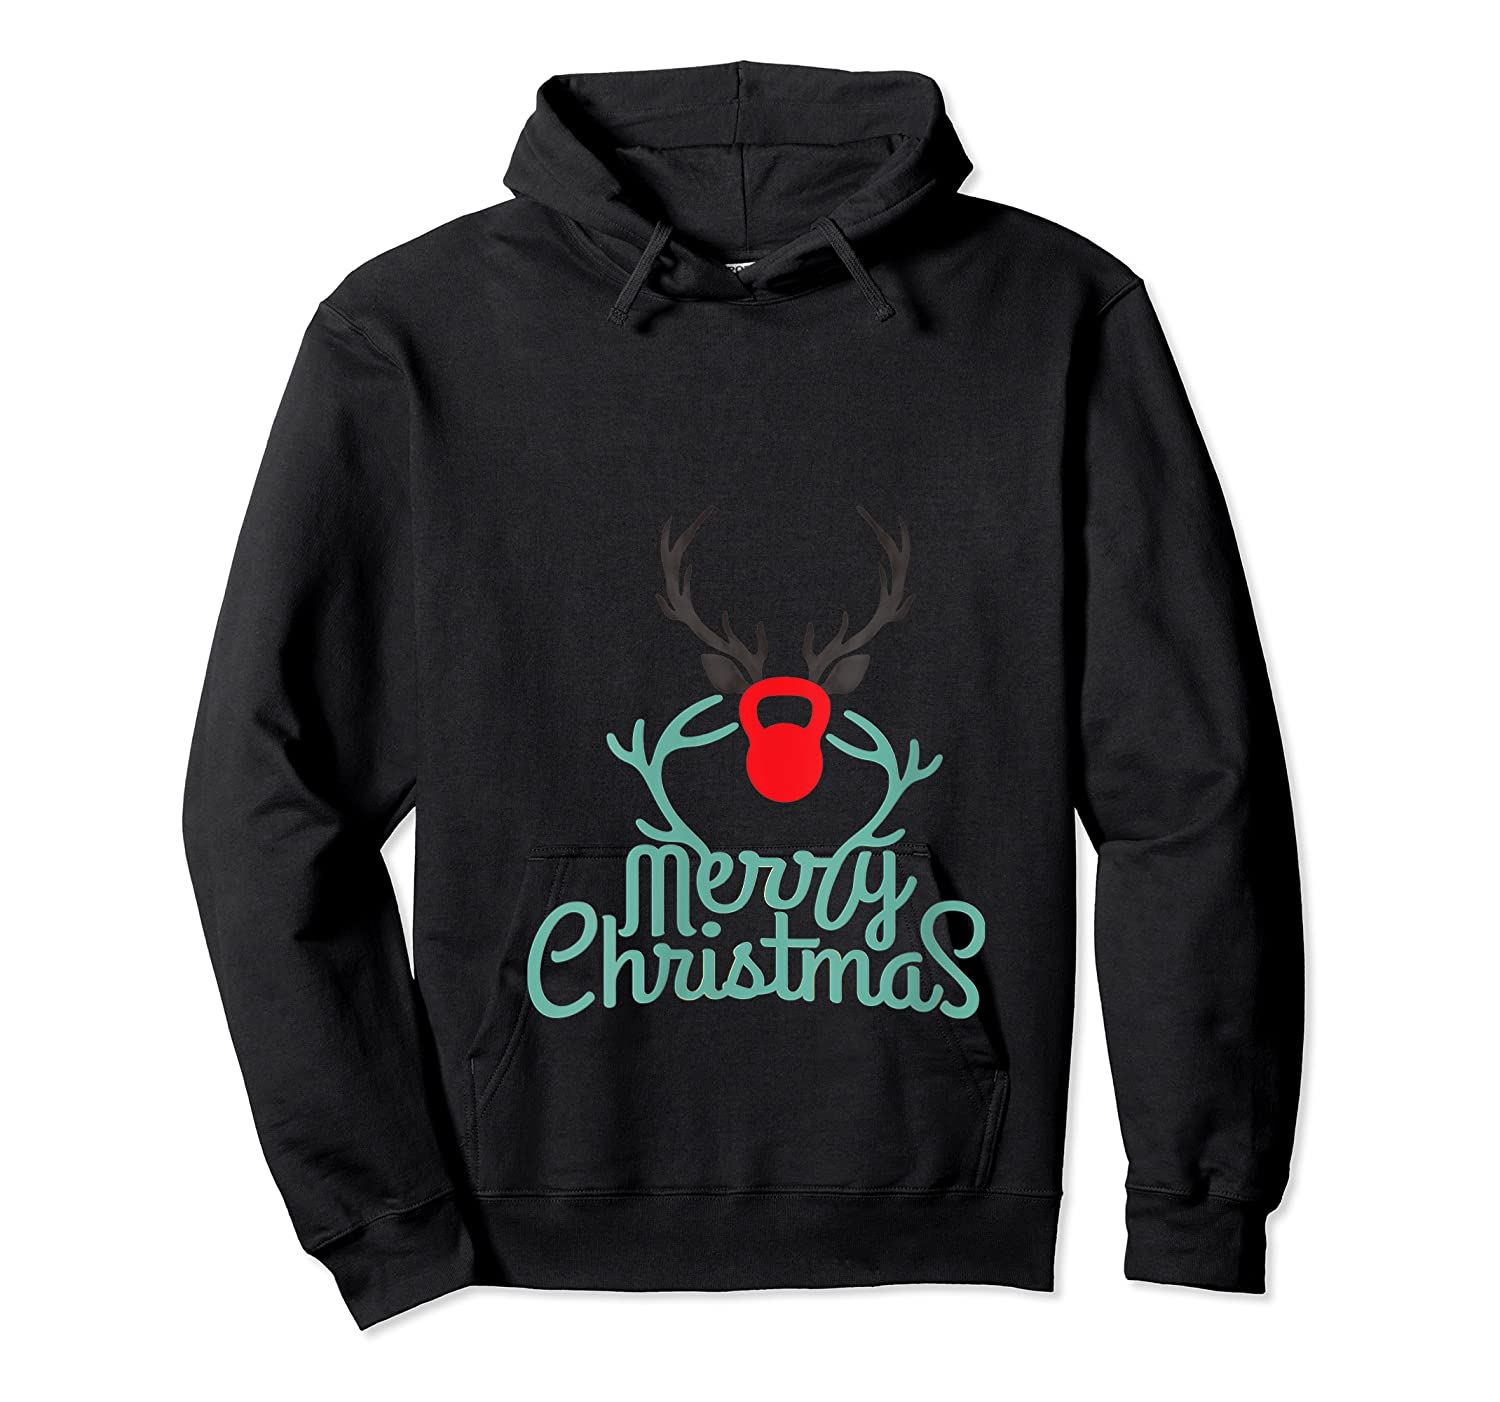 Merry Xmas Antlers Kettlebell Weightlifting Ness Workout Shirts Unisex Pullover Hoodie